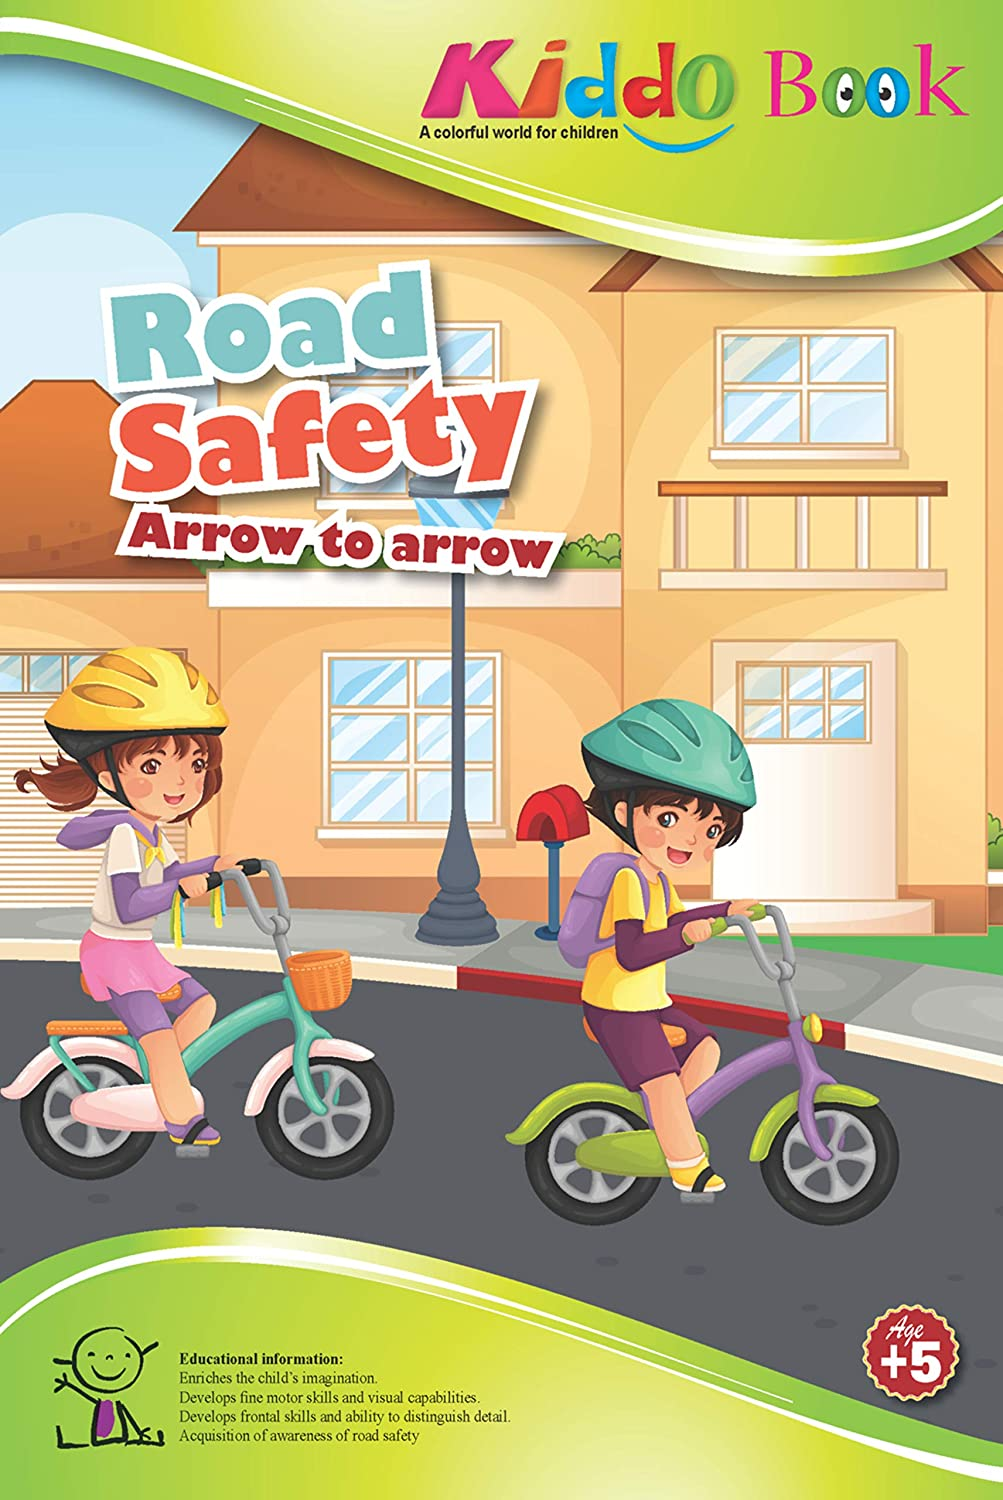 American Educational Products A-4020 Kiddo - Road Safety   B00URIKC6W